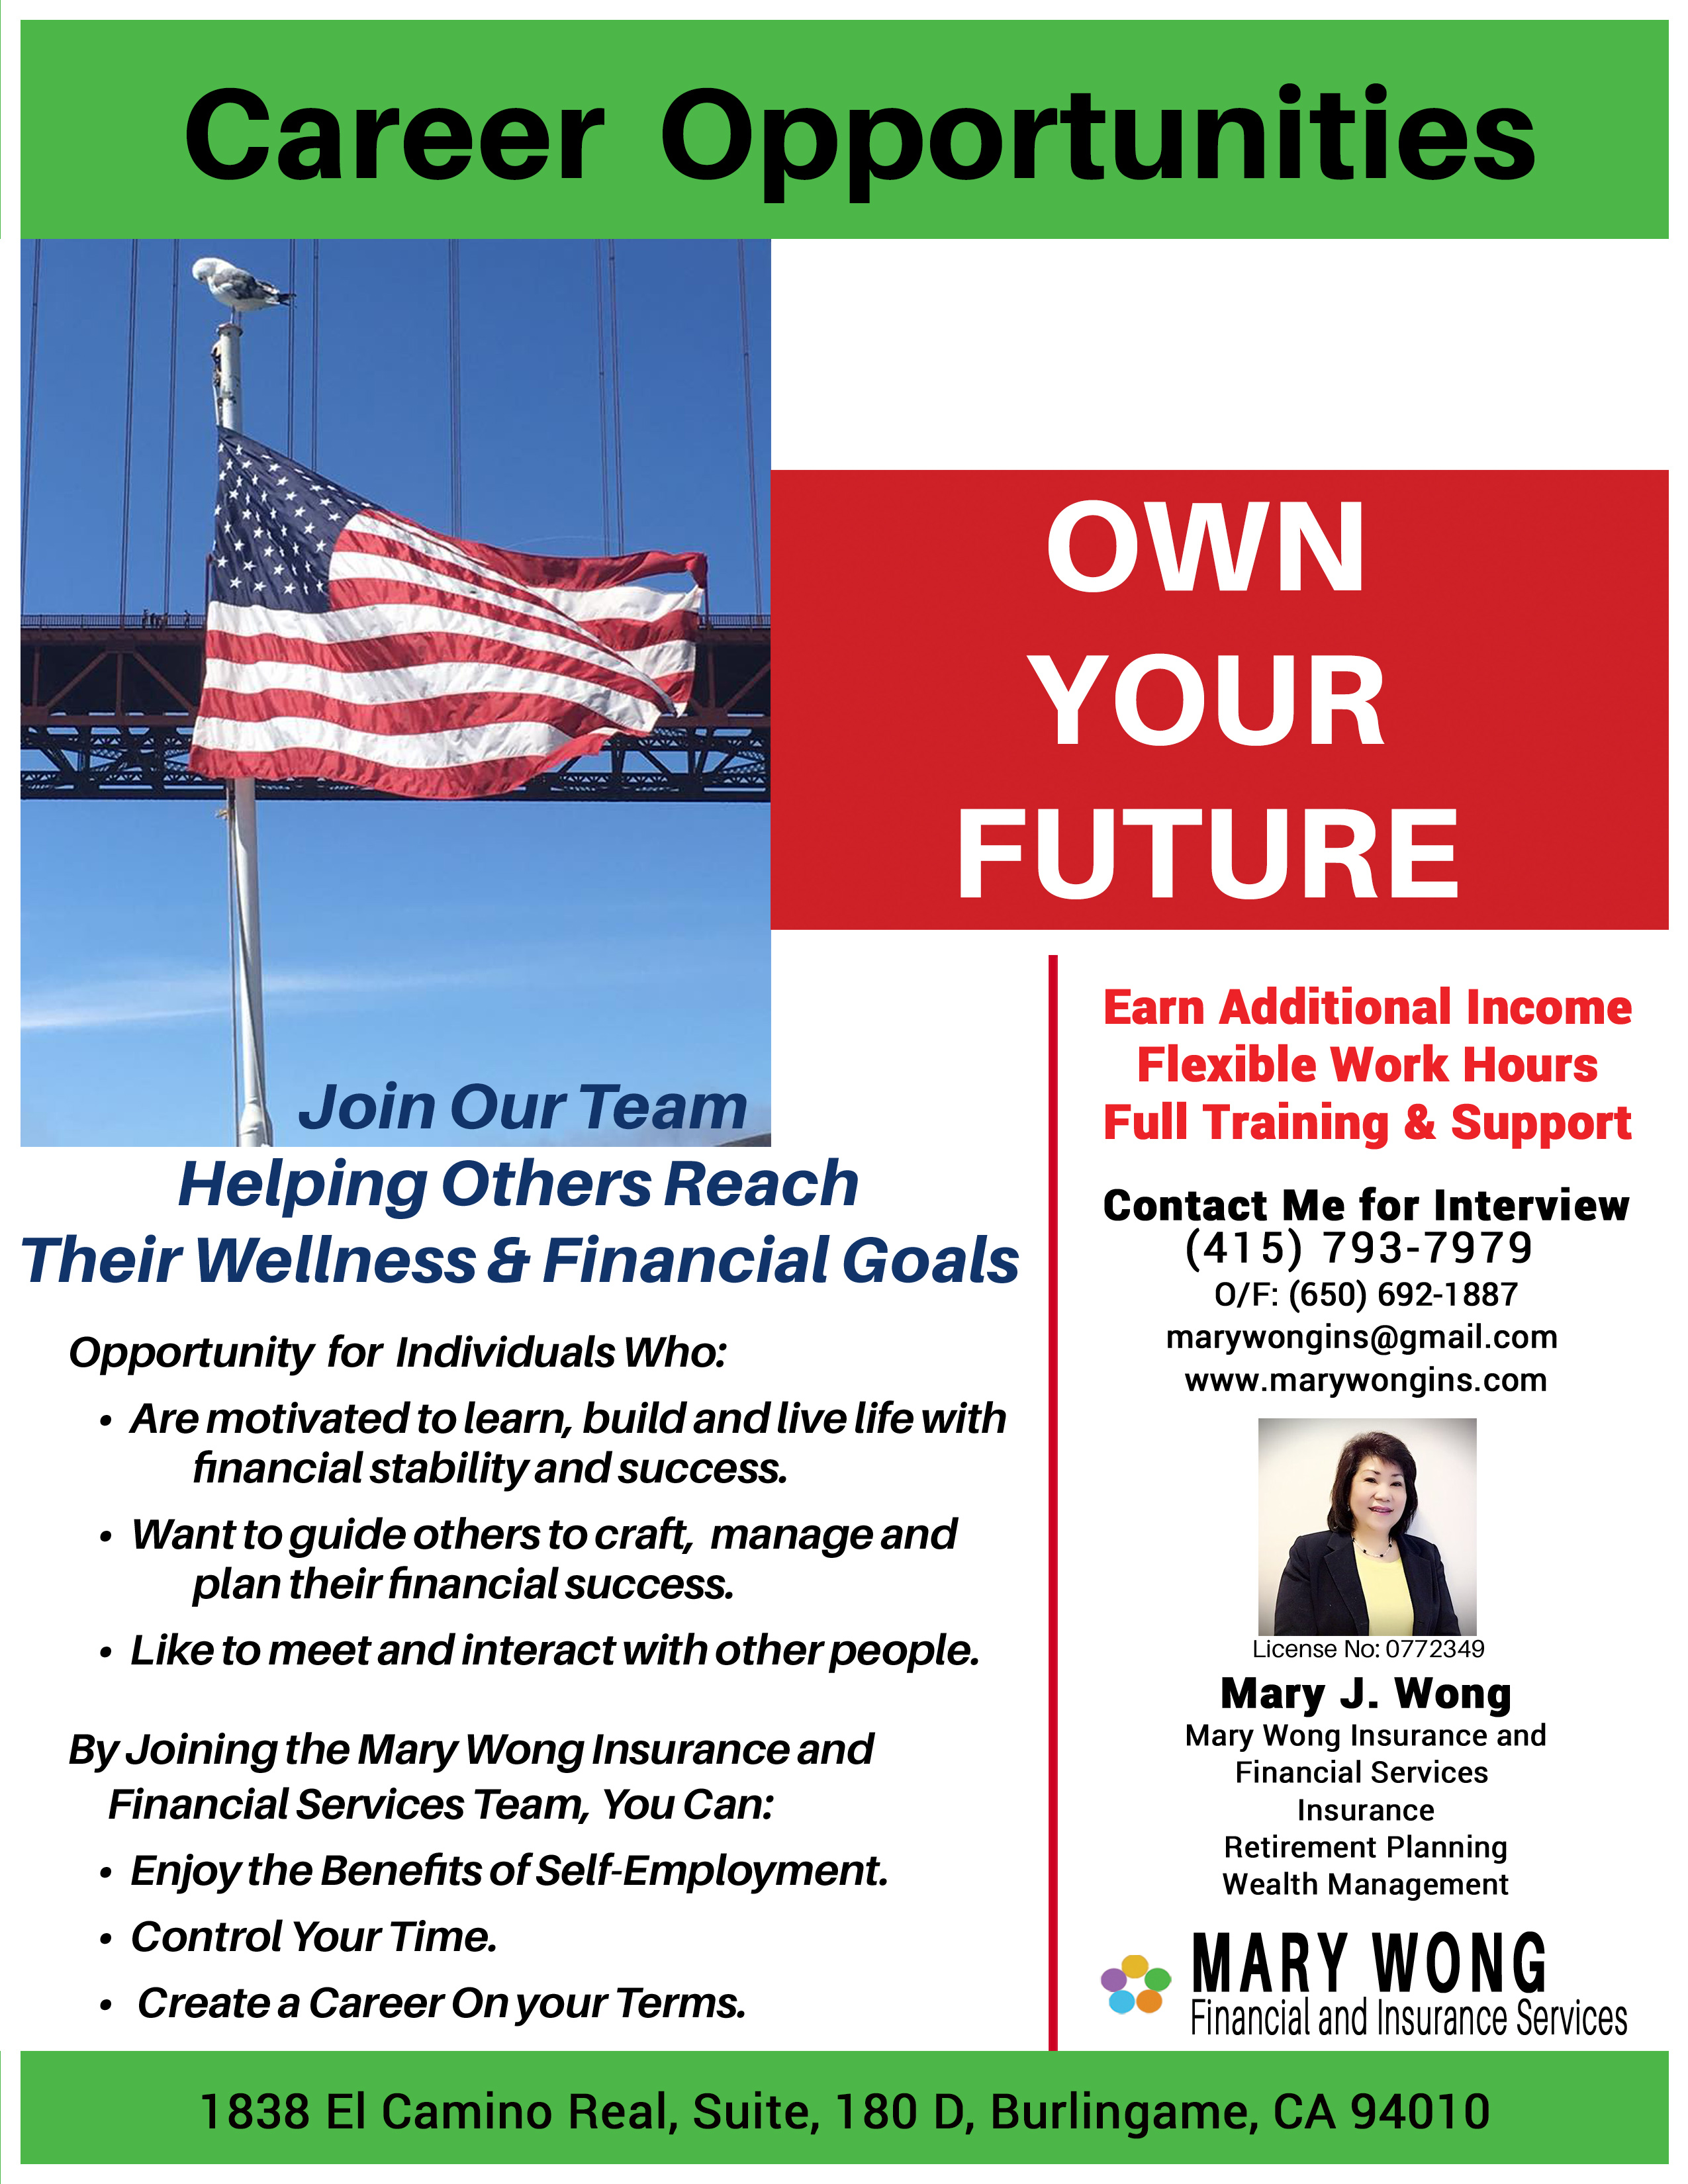 Opportunity for Motivated Individuals to Learn, Build, and Enjoy a Rich and Rewarding Life with Financial Stability and Success. Want to guide others to craft, manage and  plan their financial success